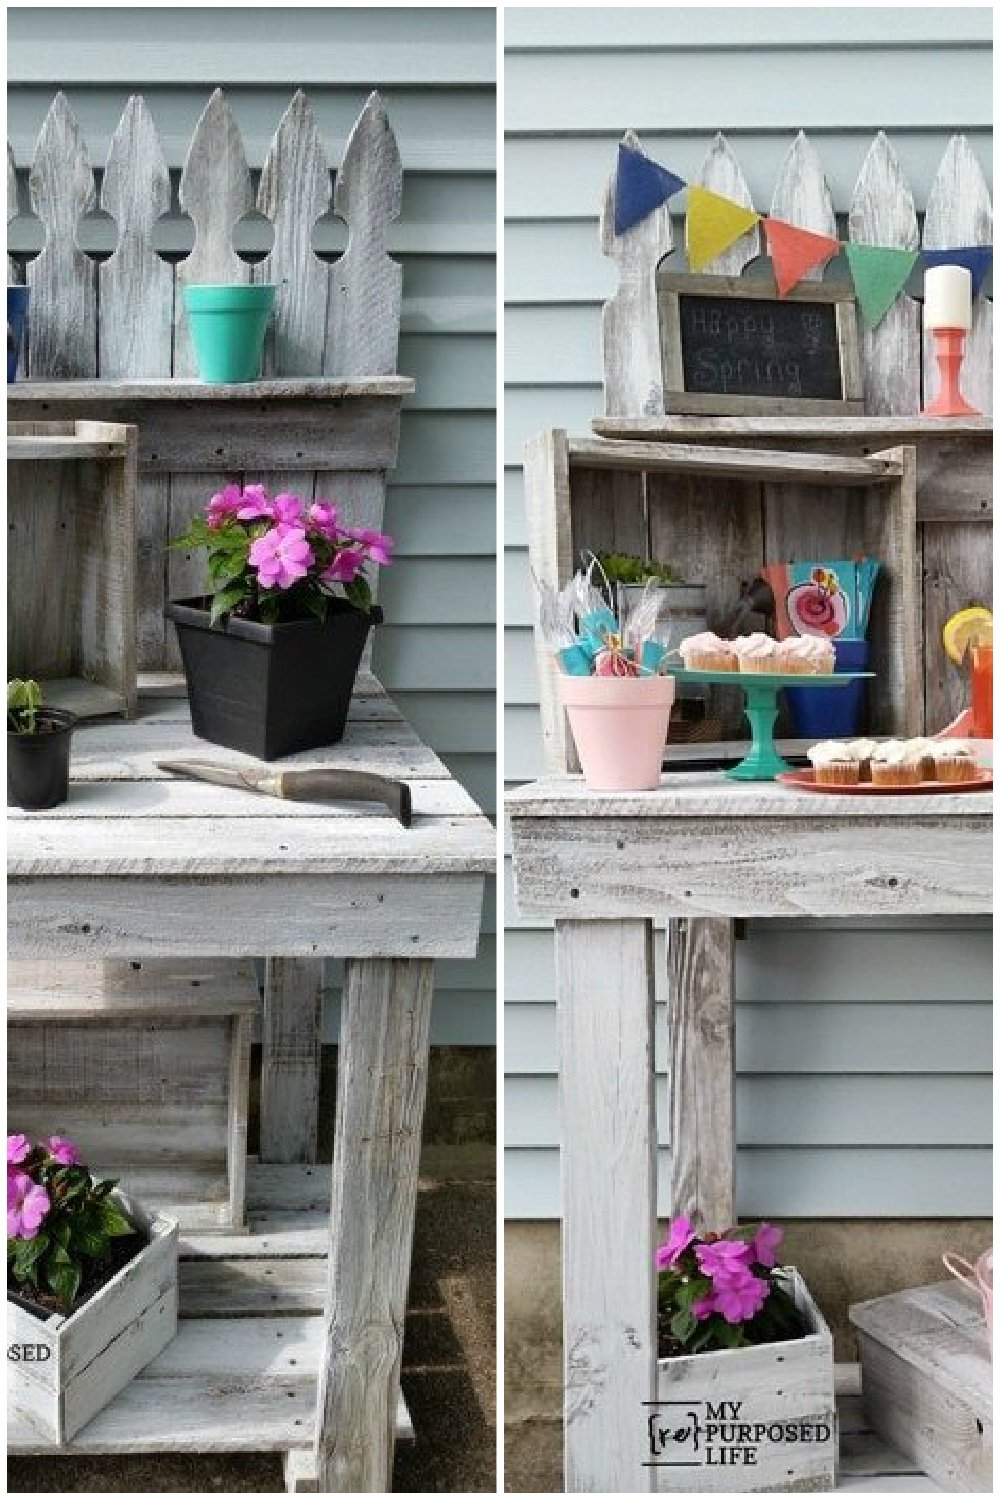 How to make your own reclaimed wood potting bench out of old fencing. This easy project also makes the perfect outdoor beverage station. #MyRepurposedLife #repurposed #outdoor #pottingbench #beveragestation #diy via @repurposedlife